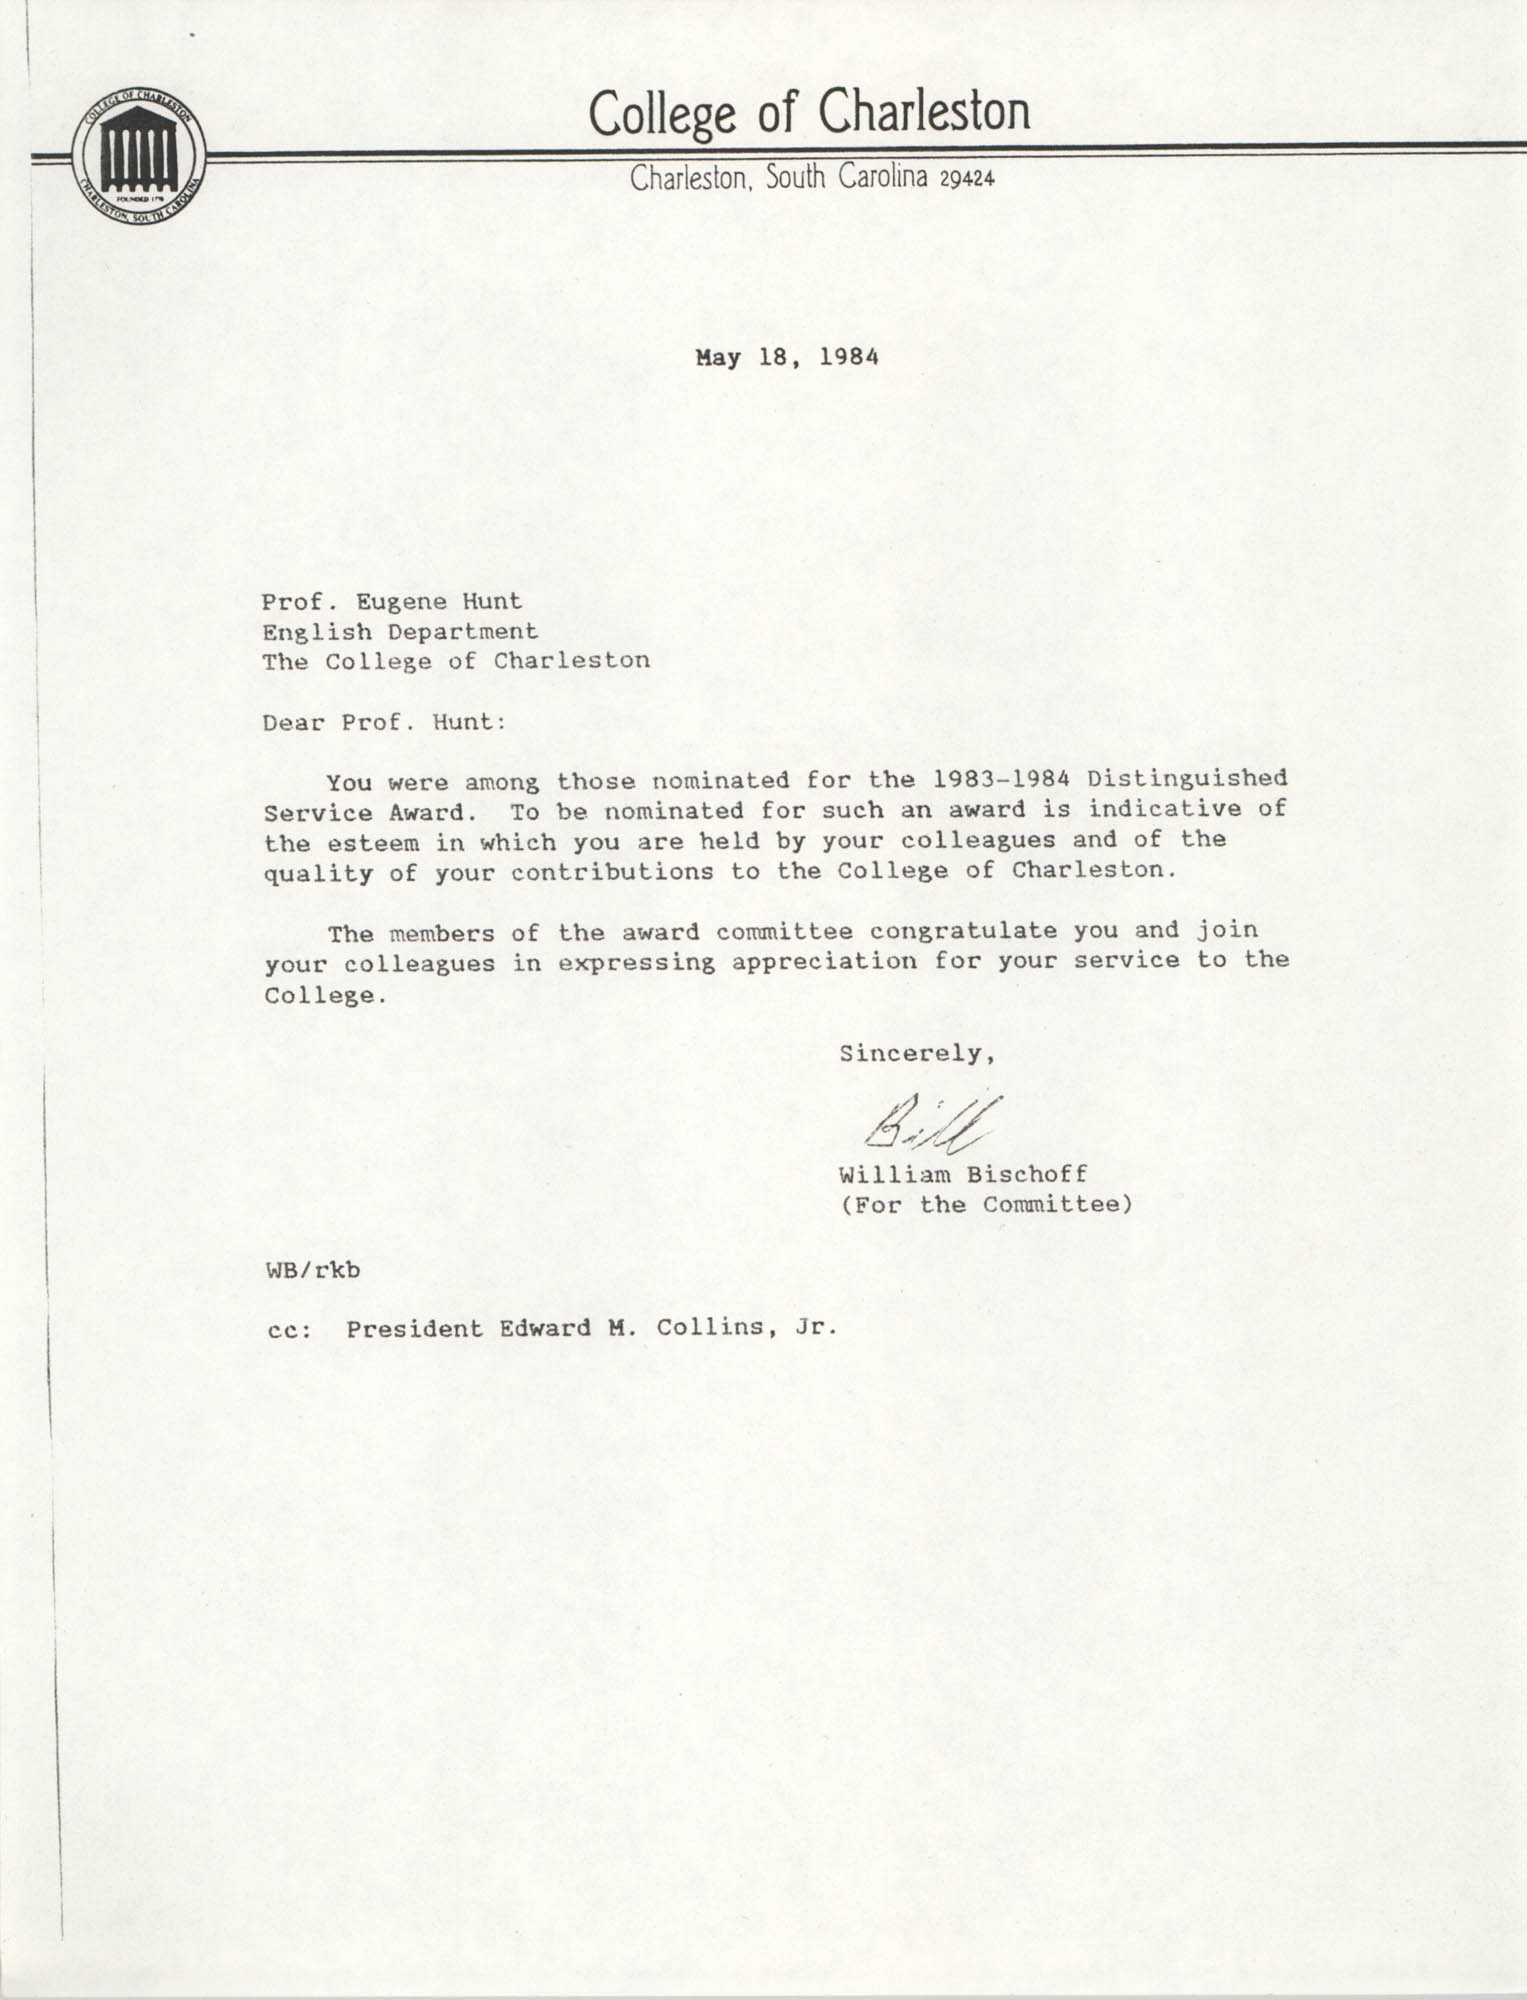 Letter from William Bischoff to Eugene Hunt, May 18, 1984